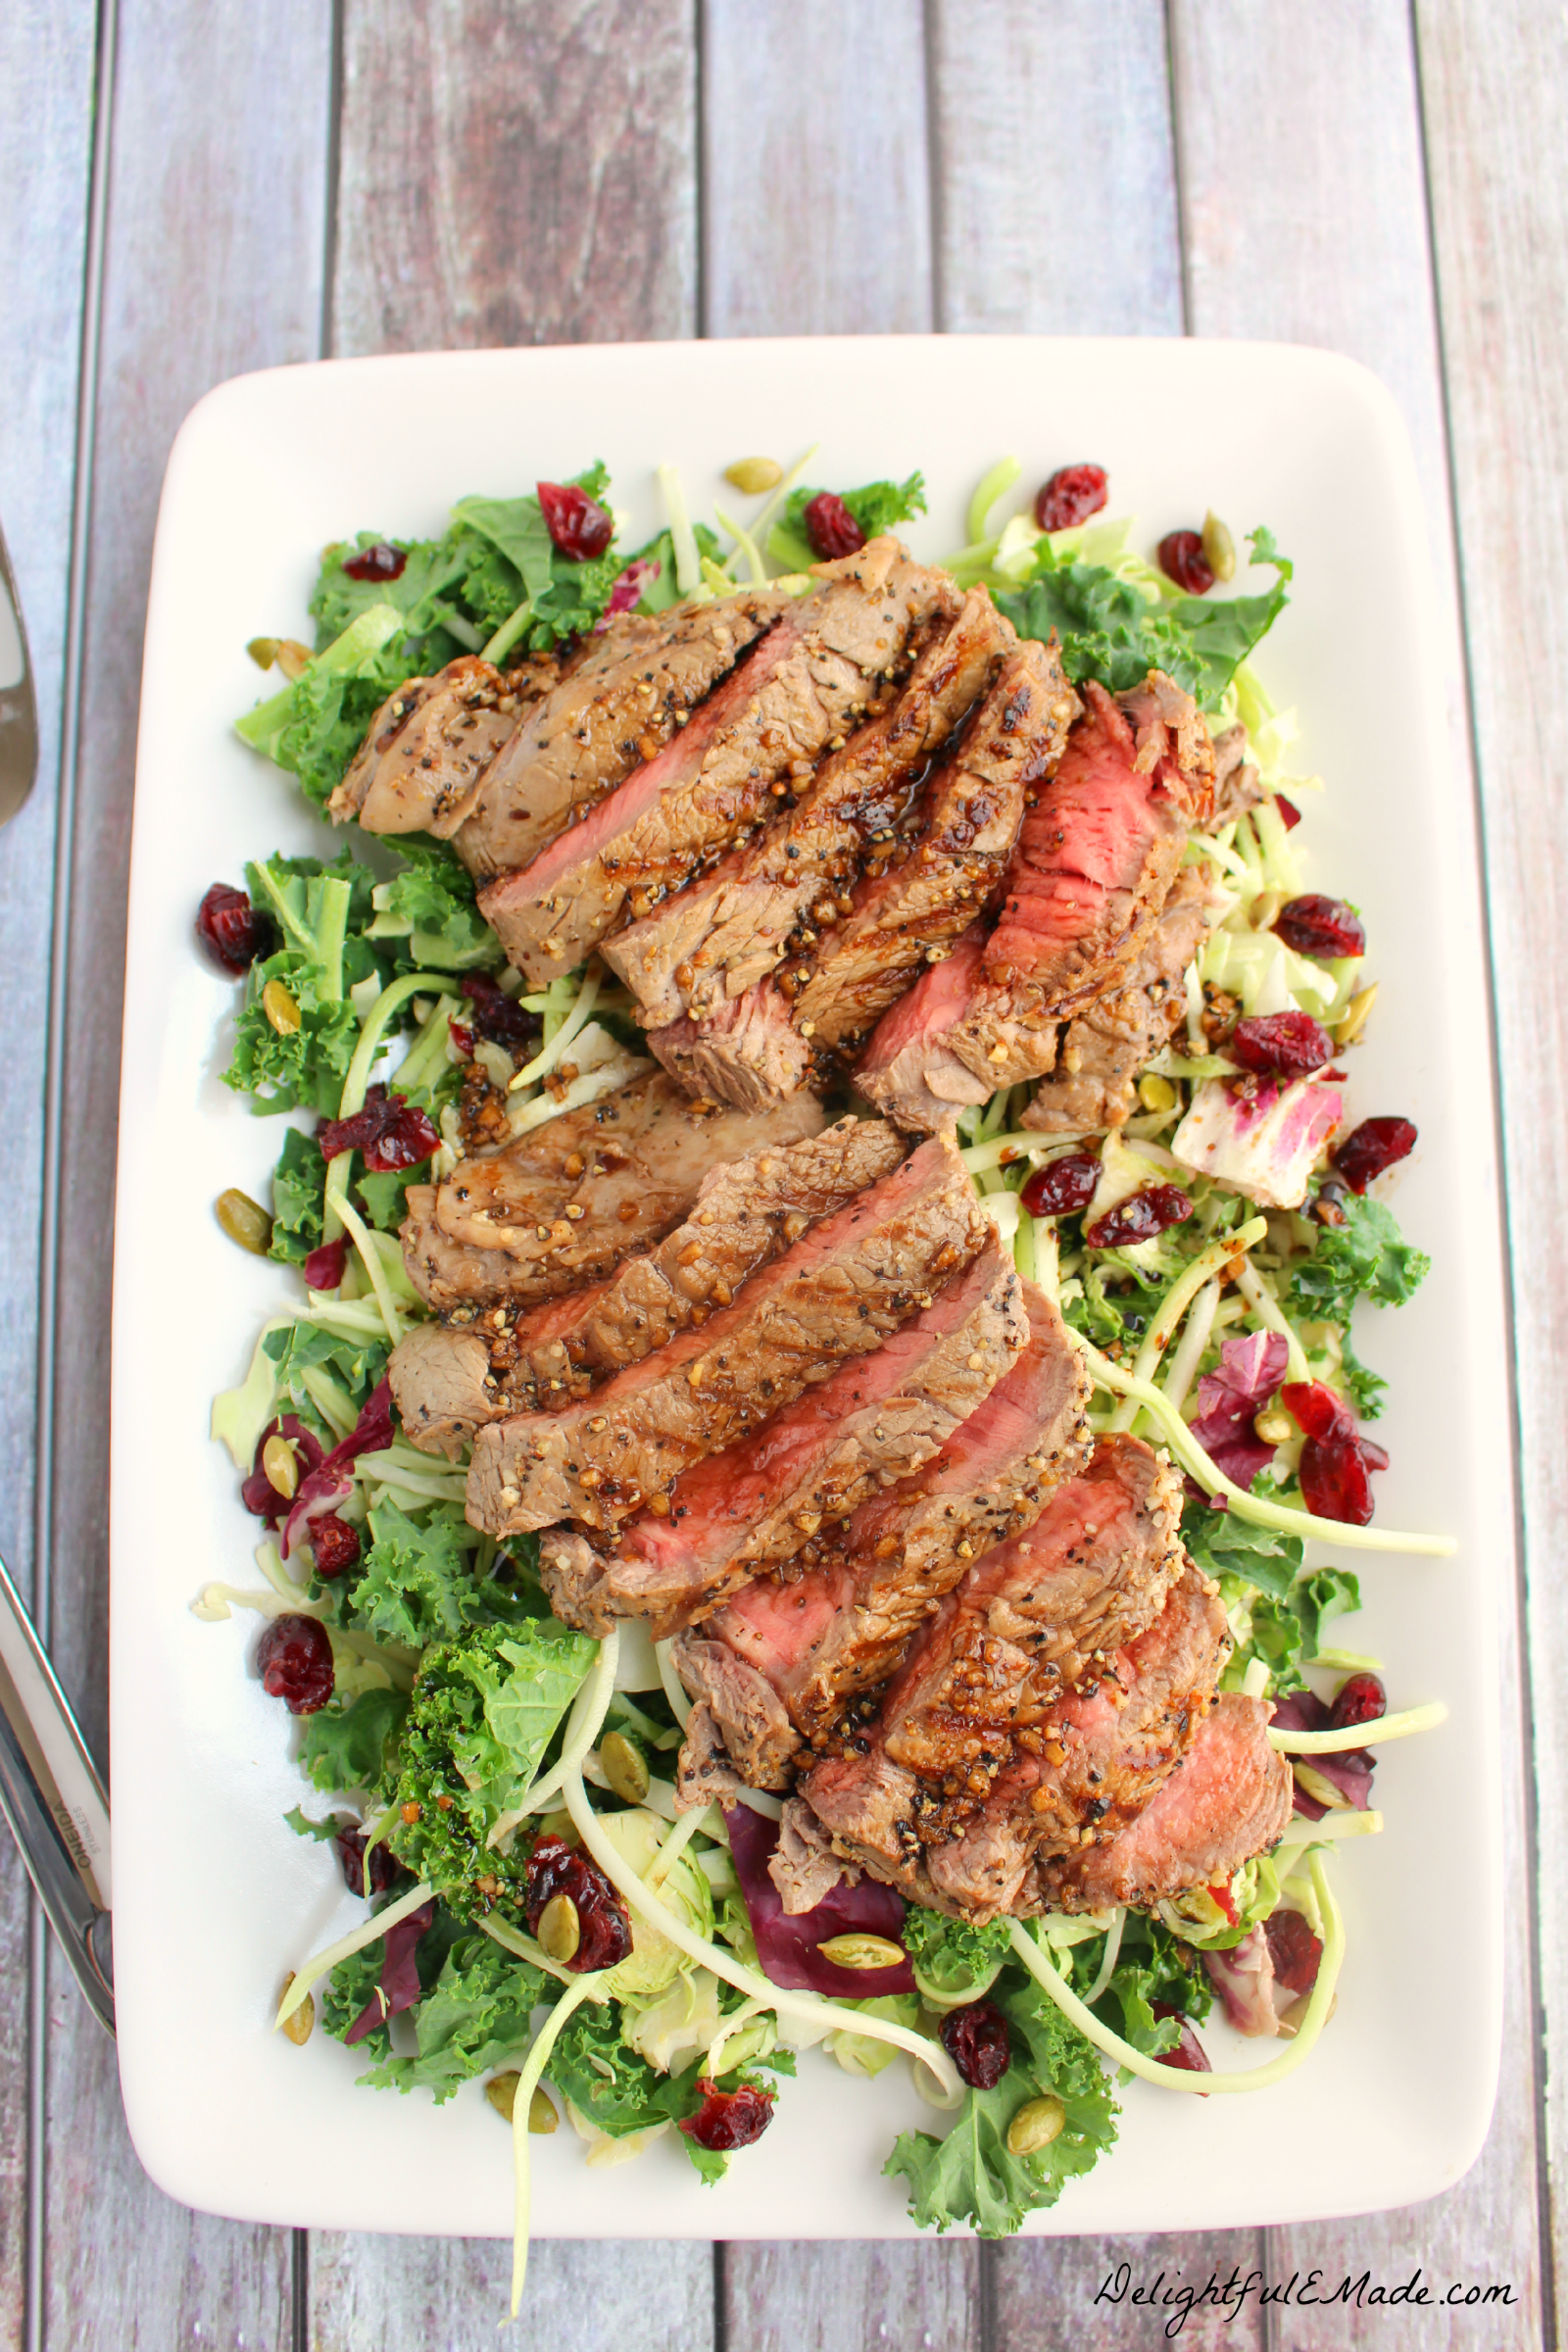 The perfect entree salad for the meat lover! Loaded with crunchy, delicious kale, Brussels sprouts, shredded broccoli, cabbage and chicory and topped with grilled sirloin steak, this salad is incredible. Fresh, filling and perfect for lunch or a light dinner!